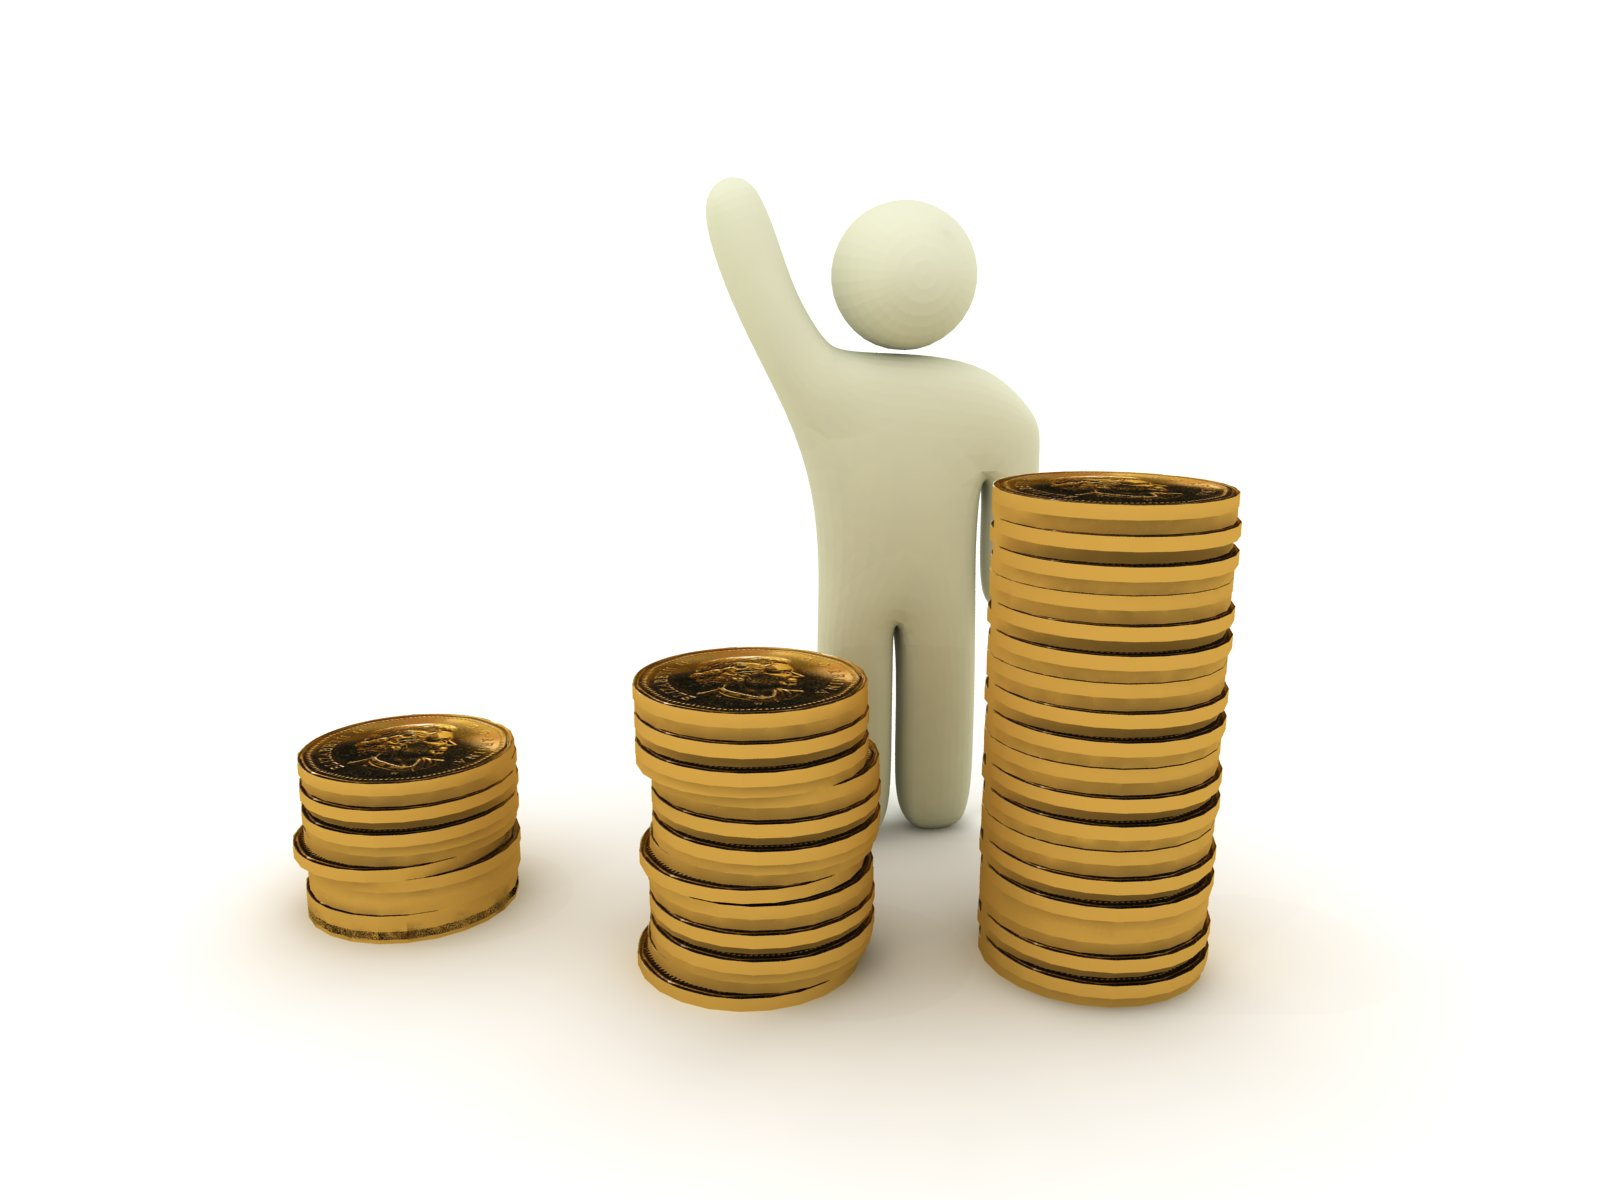 Human Figure with Stack of Coins